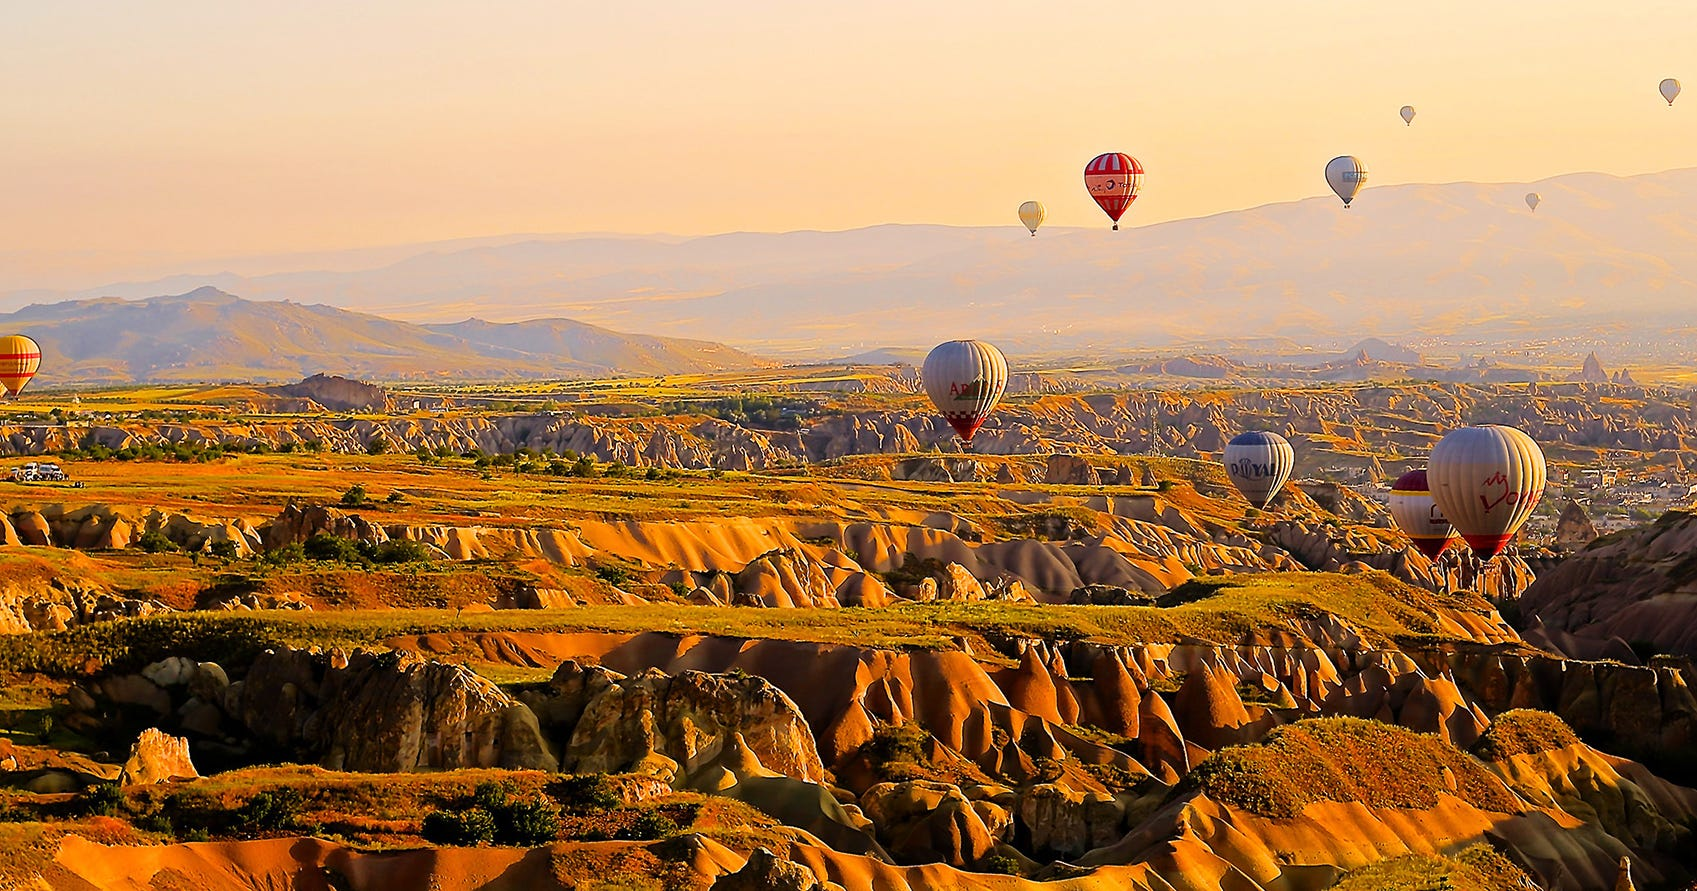 7 Incredible Hot Air Balloon Rides You'll Remember Forever